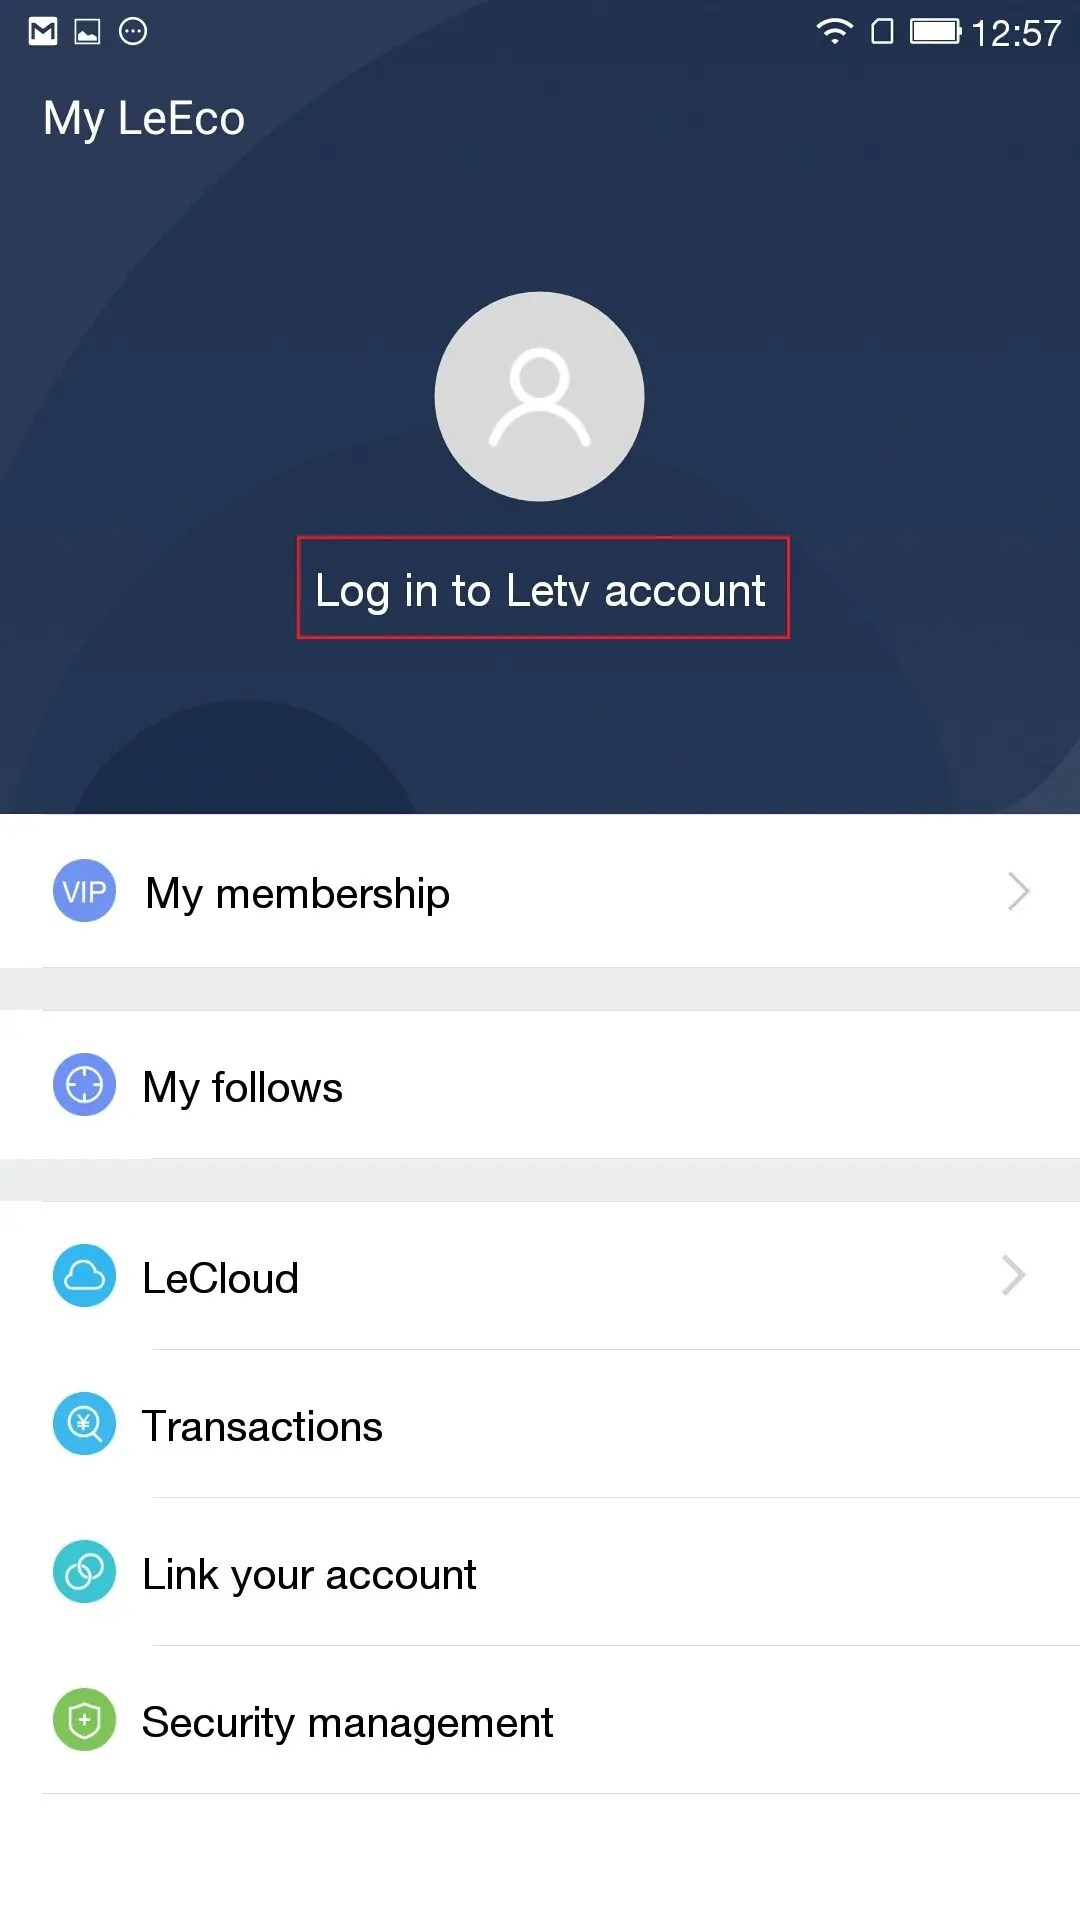 Log in to Letv accountを押す